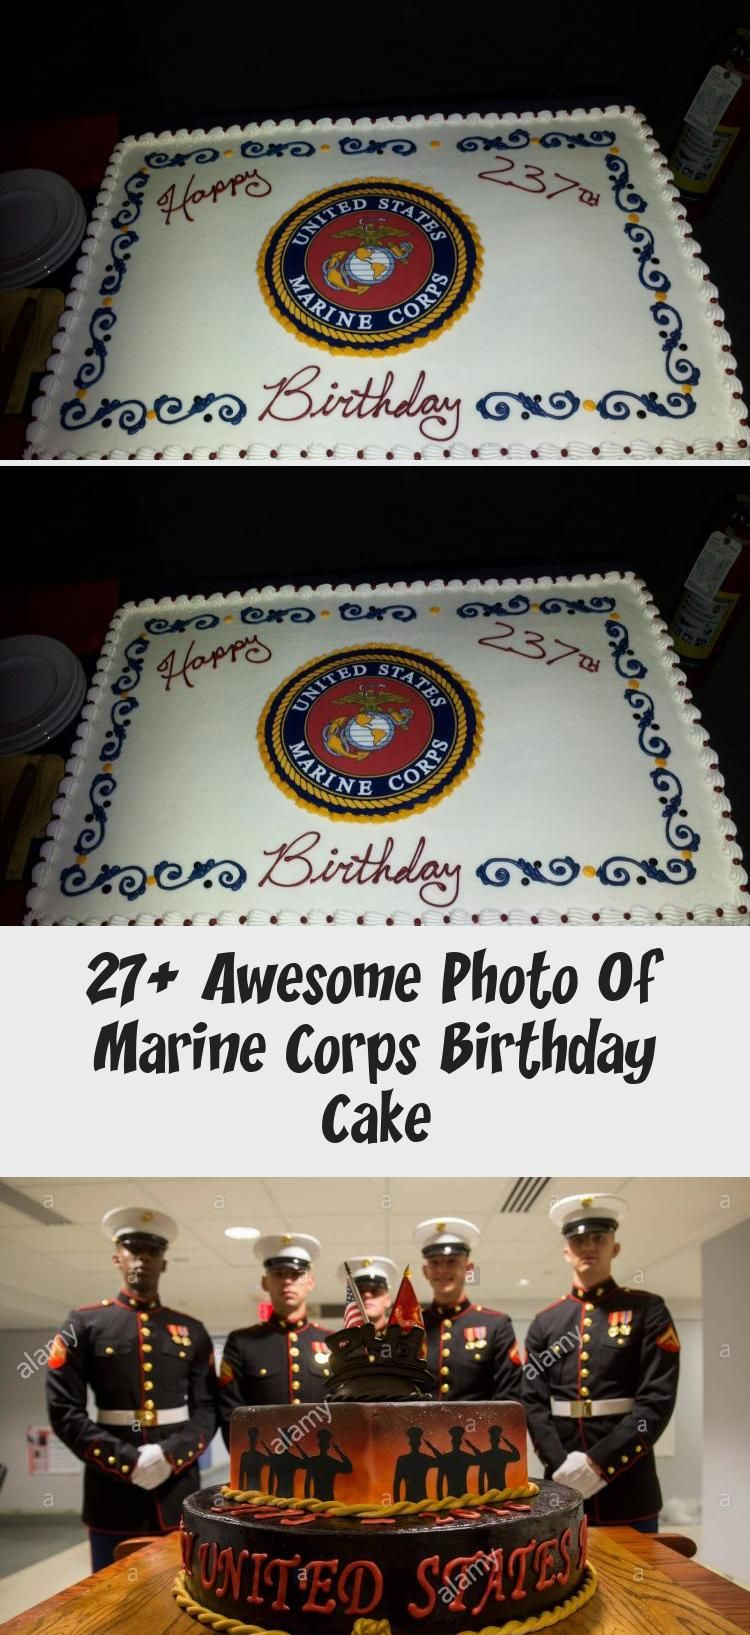 27+ Awesome Photo Of Marine Corps Birthday in 2020